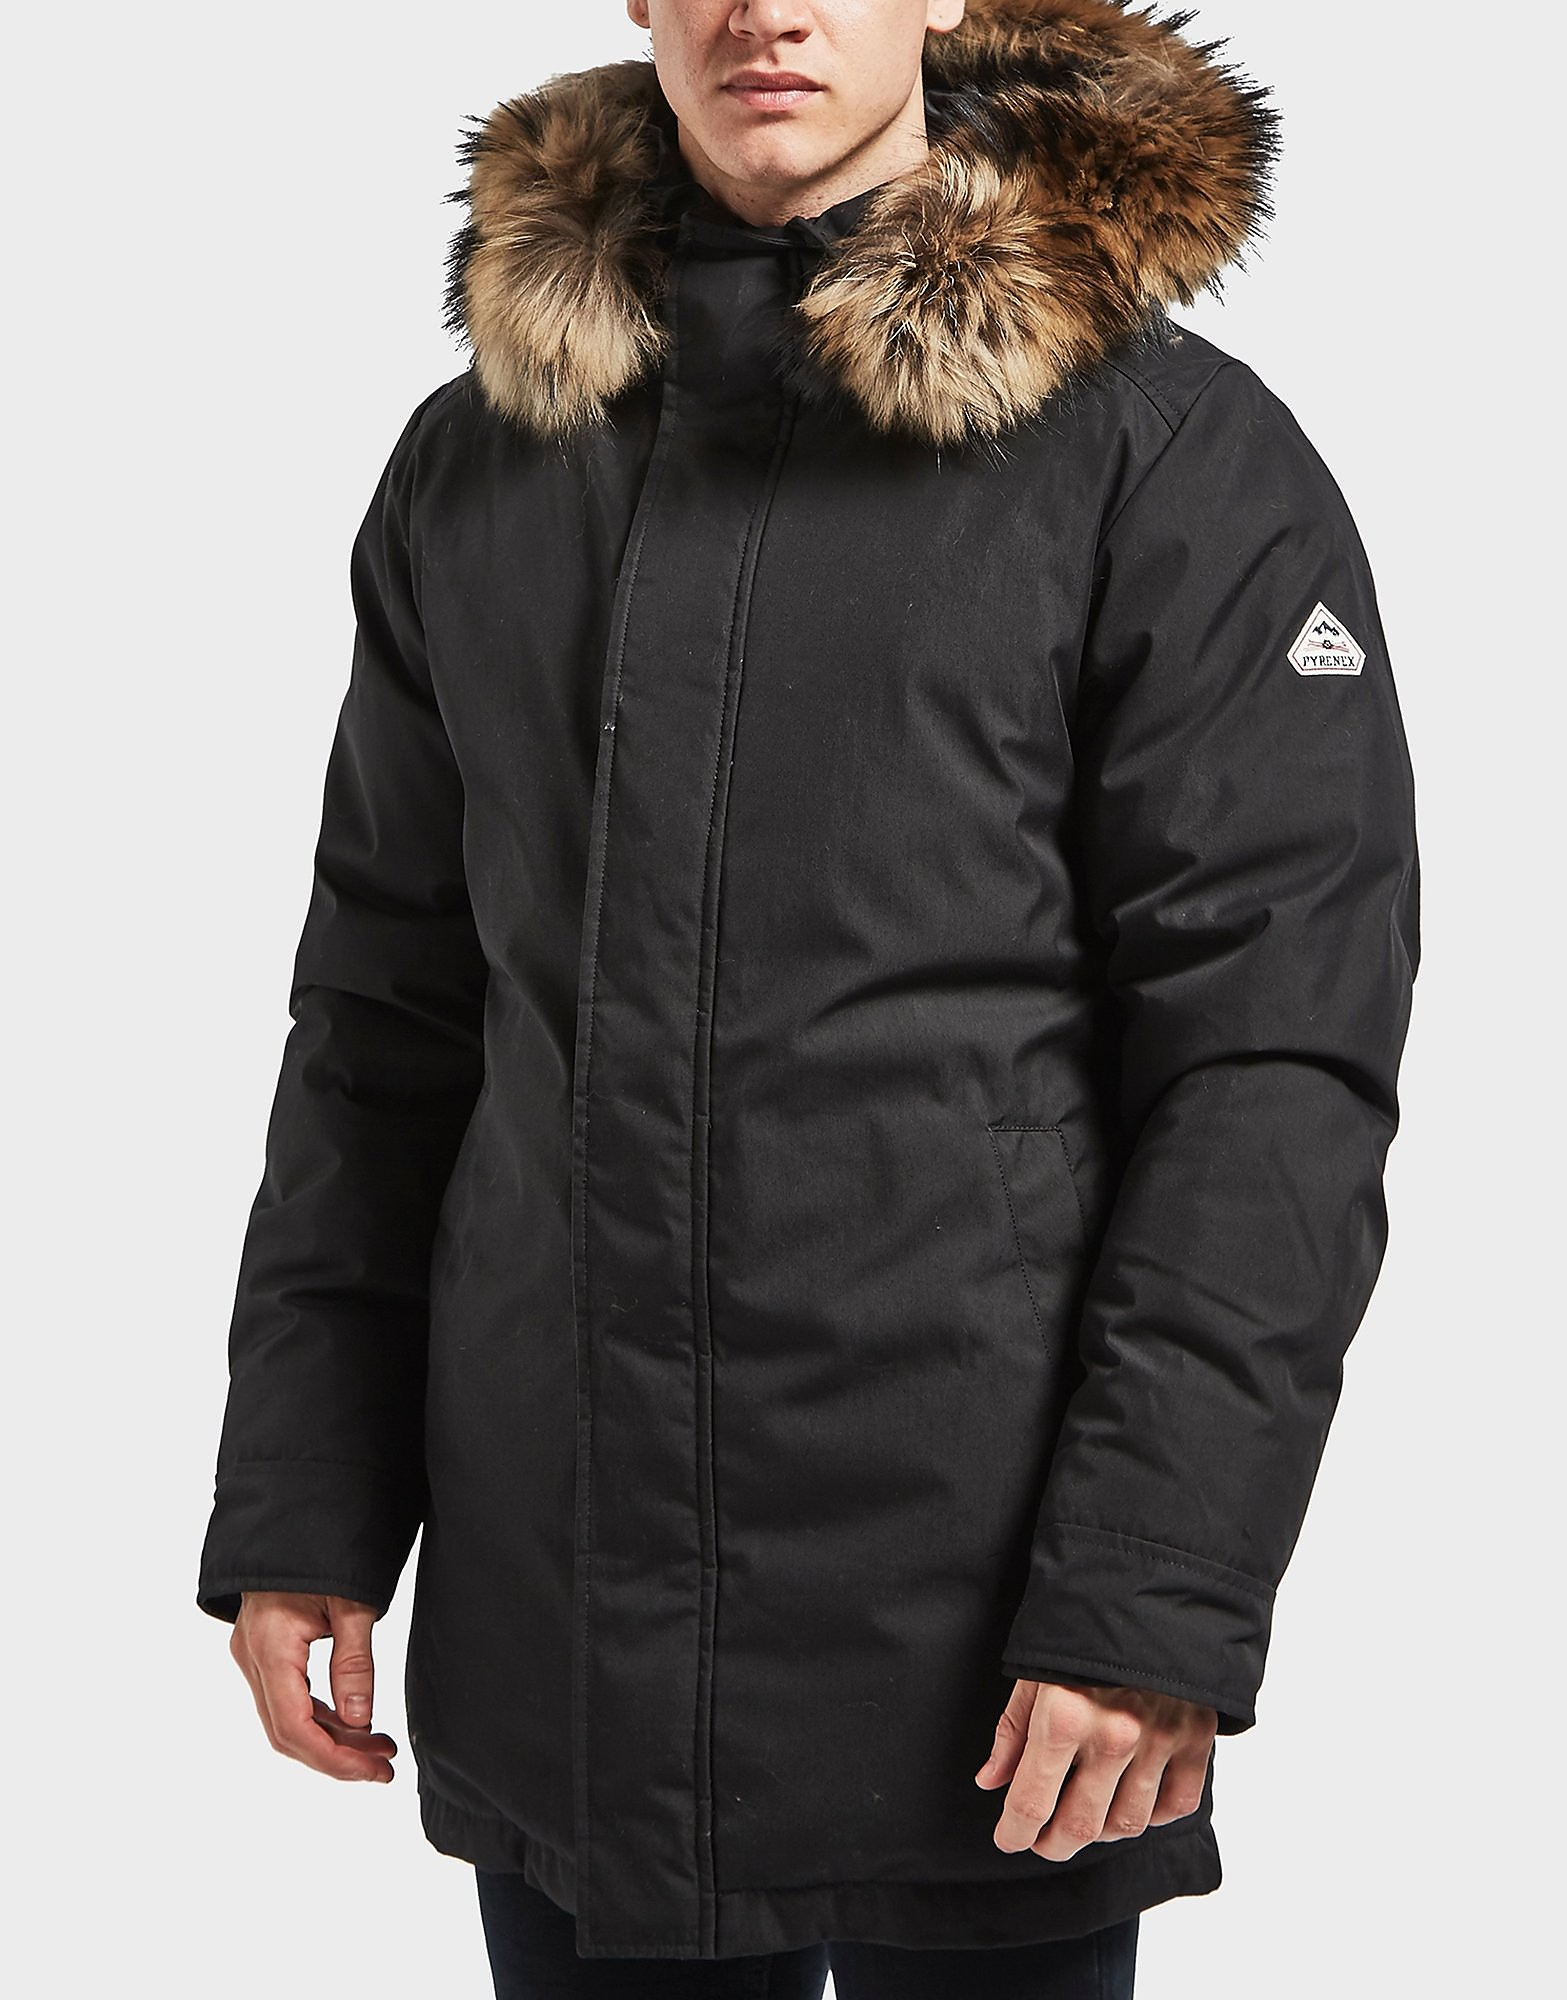 Pyrenex Annecy Padded Jacket